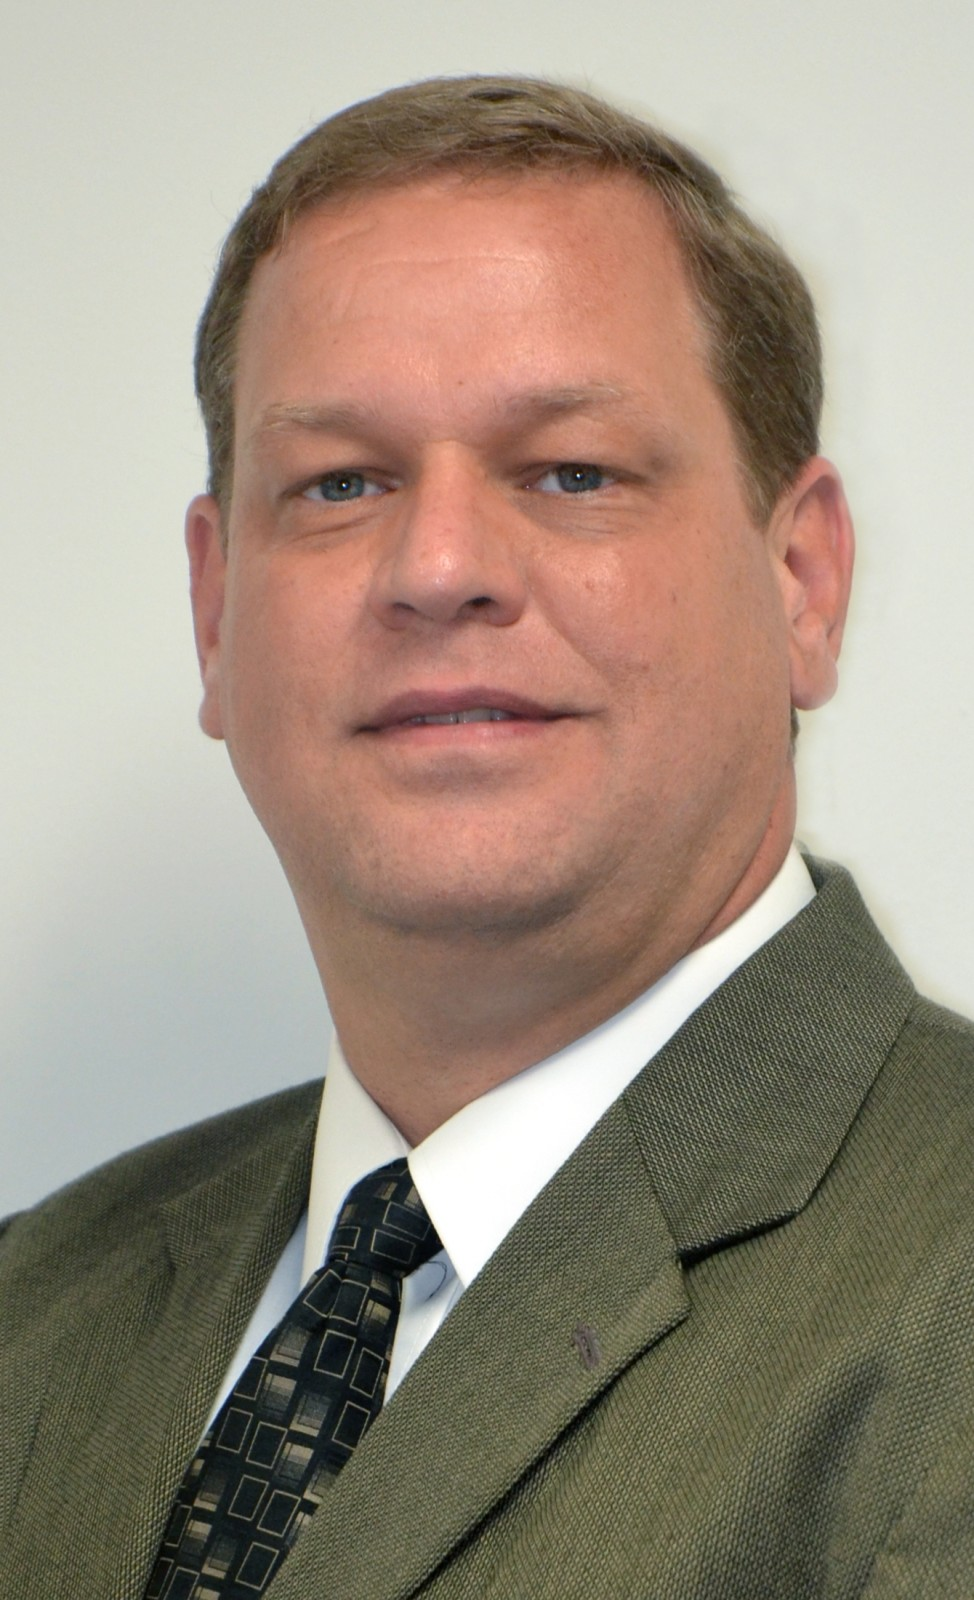 Former Fayette Co States Atty Friedel announces he will run for that office again